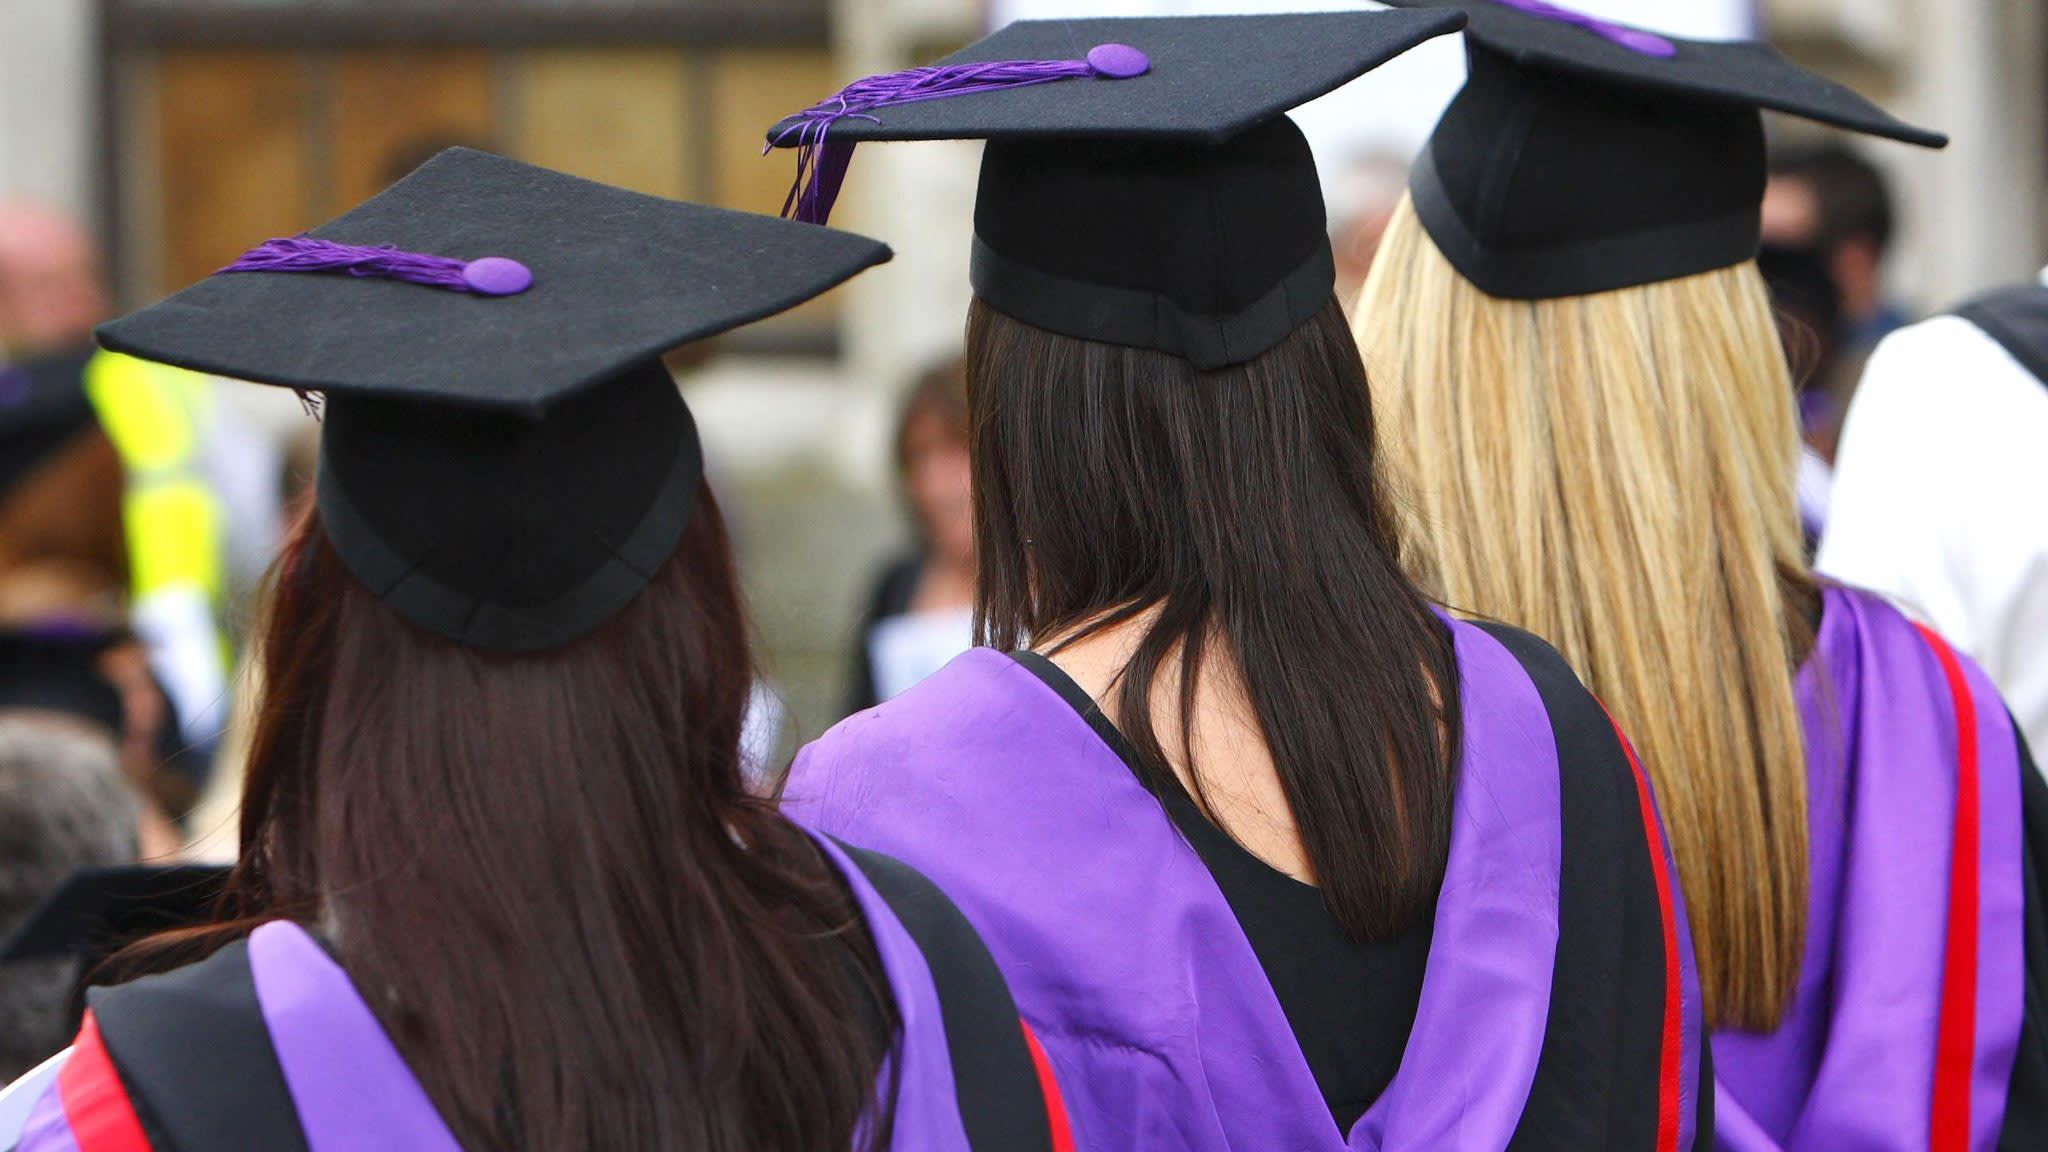 Labour to raid pension tax relief to pay for student fees cut | Financial Times